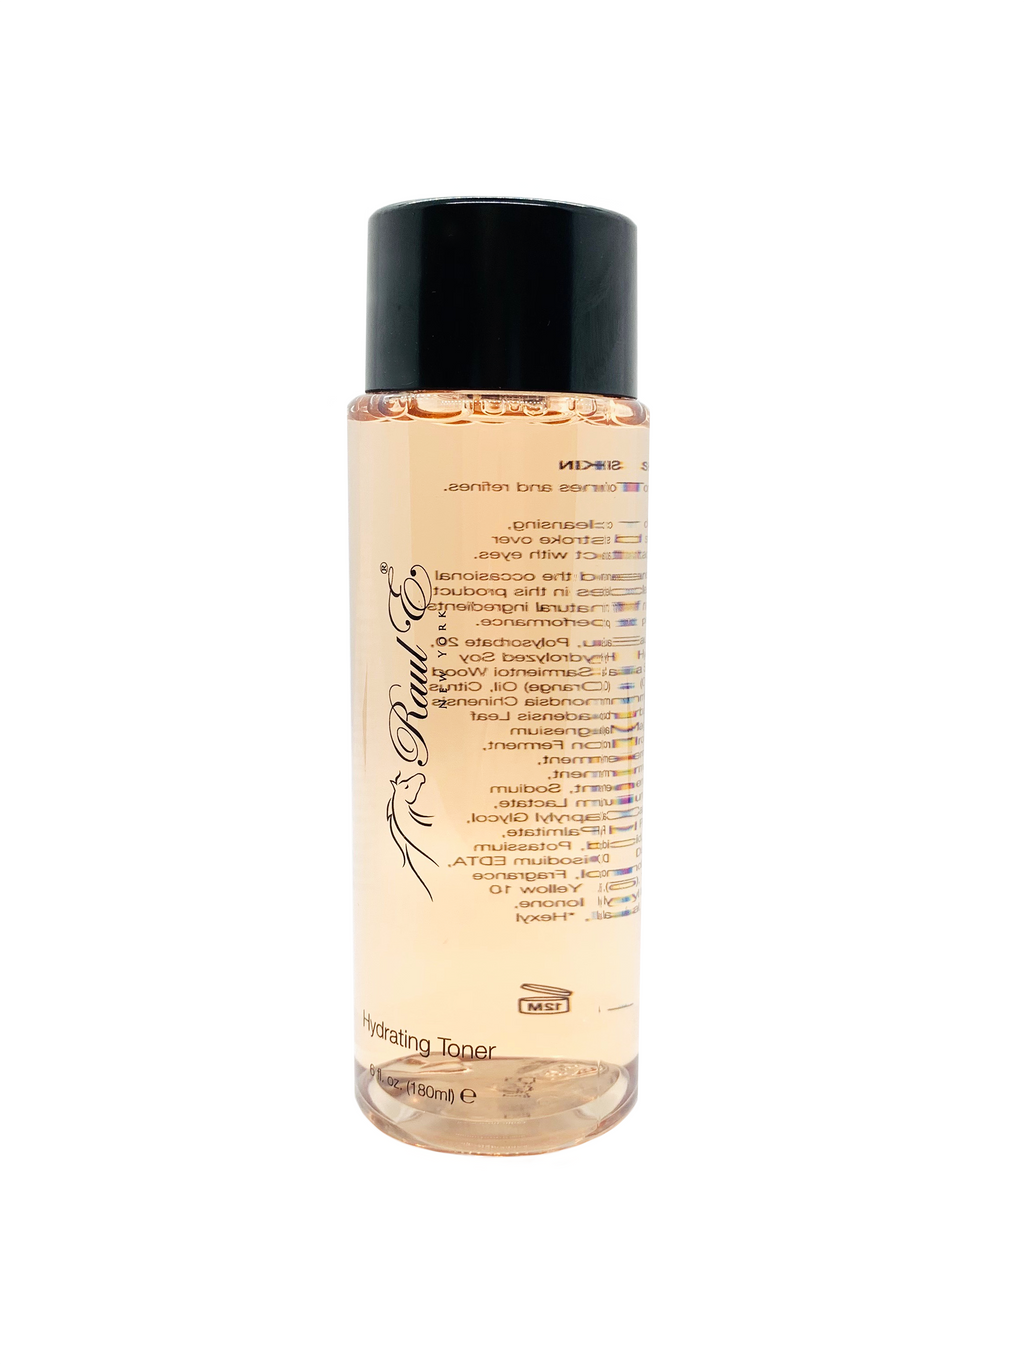 Hydrating Toner -Nourishes - Botanical Blend -Sweeps away makeup